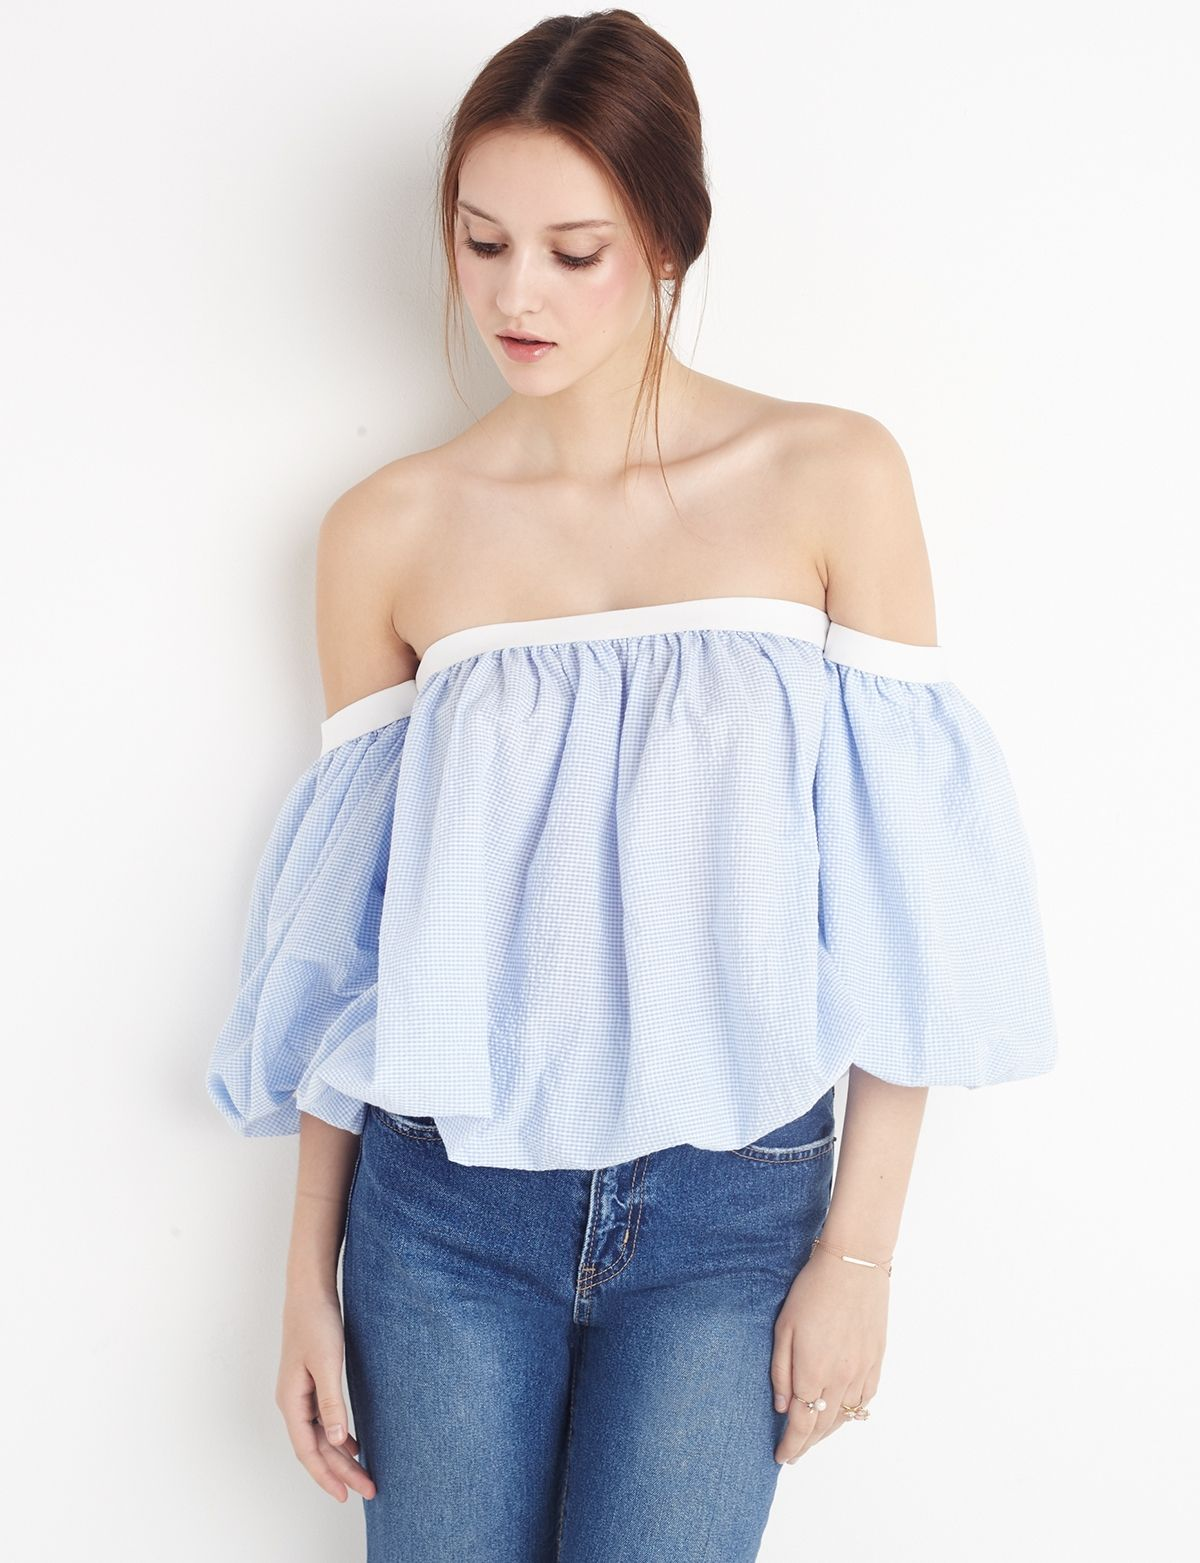 68b6caff0c18a3 Baby blue gingham cotton off the shoulder top with detached bubble  sleeves. fashion  pixiemarket